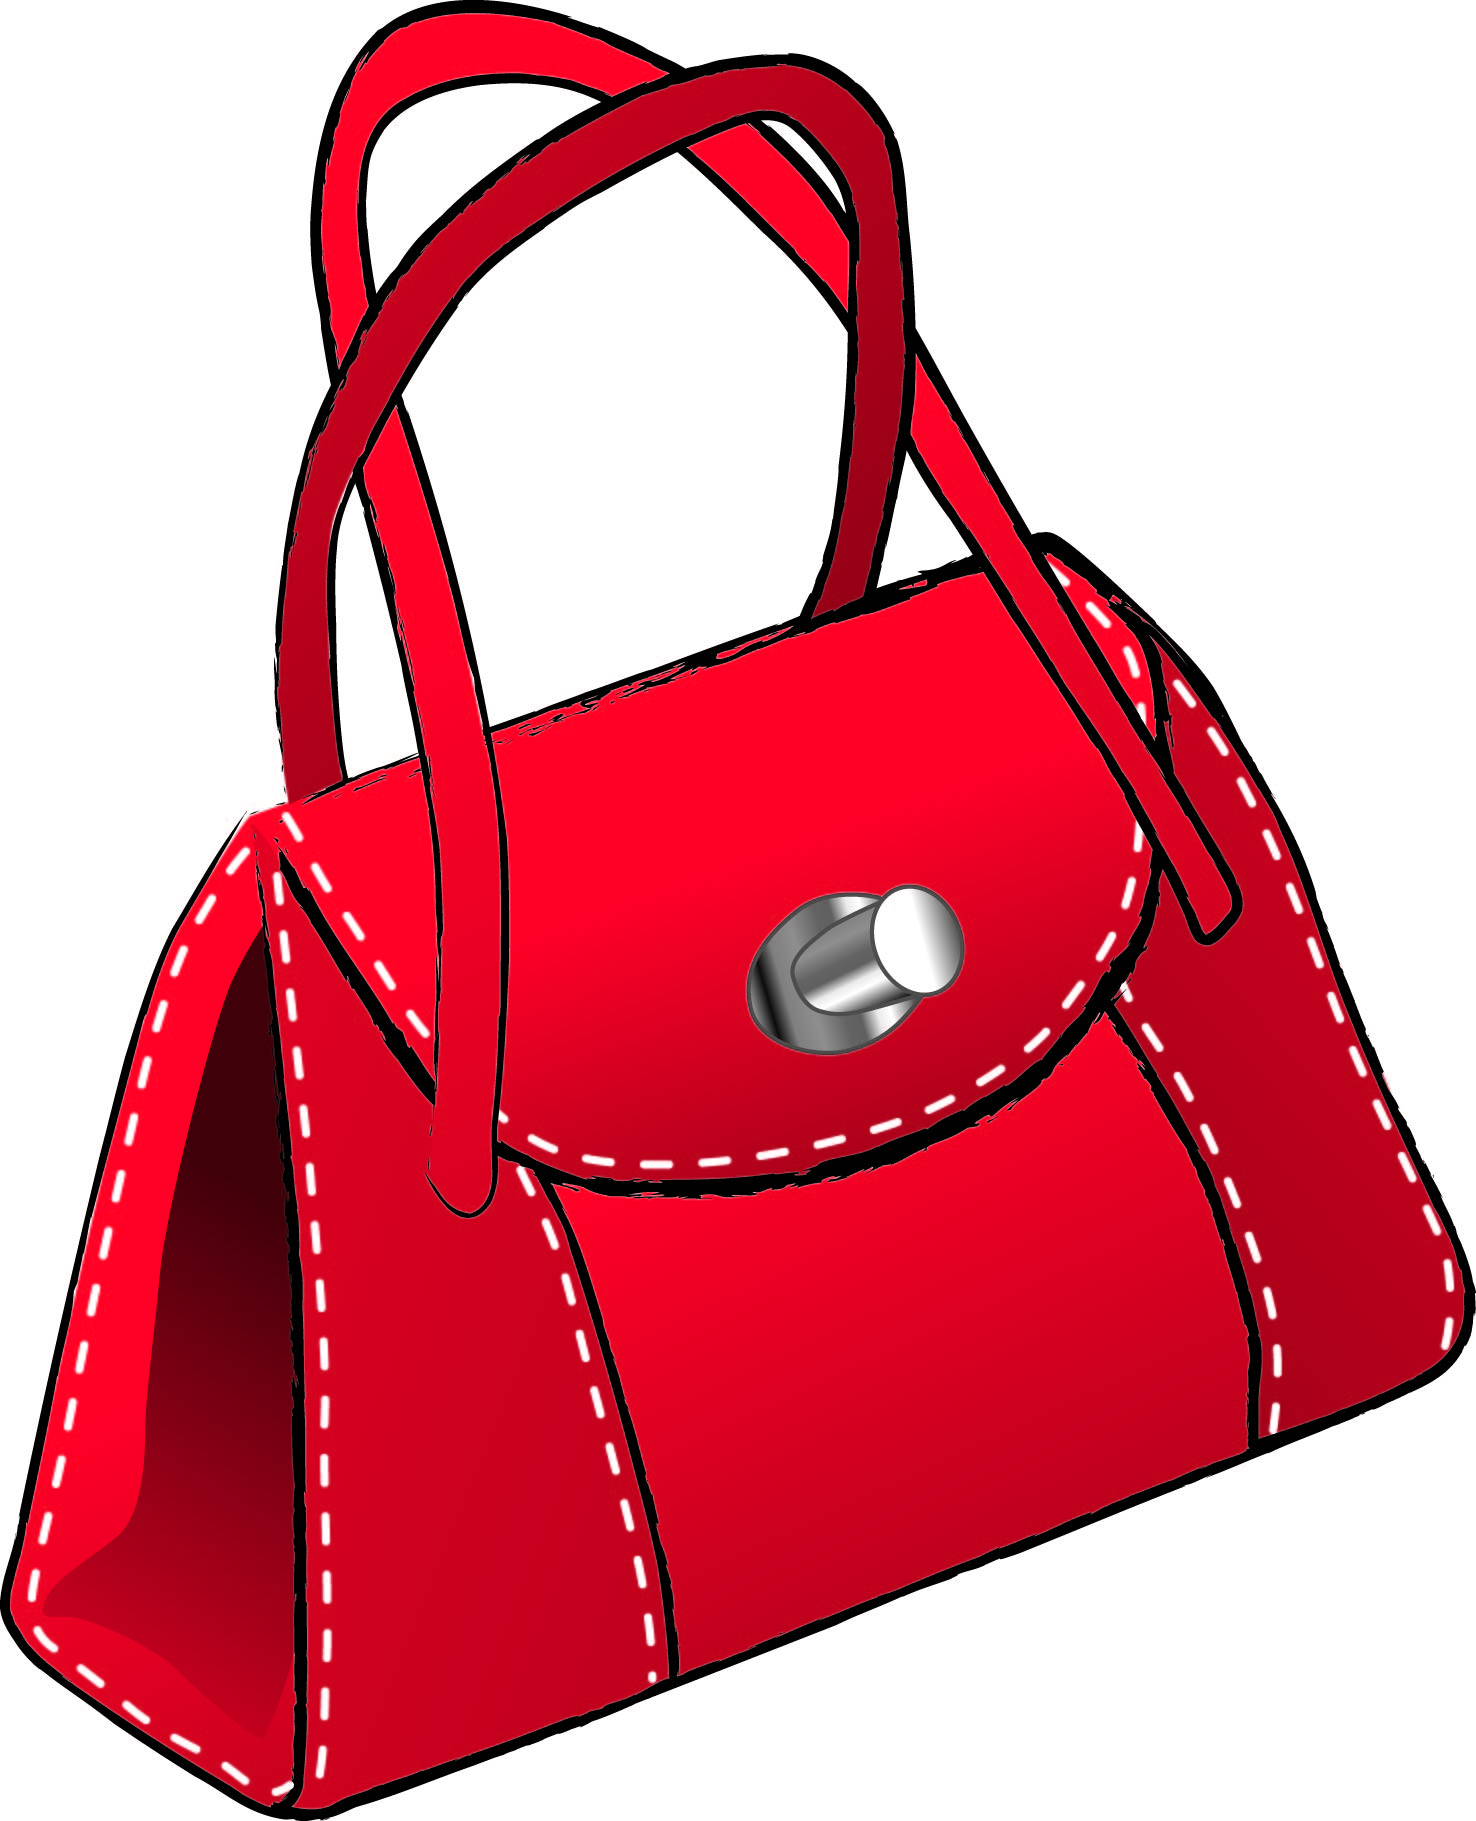 Money Purse Clipart   Free download on ClipArtMag (1476 x 1821 Pixel)